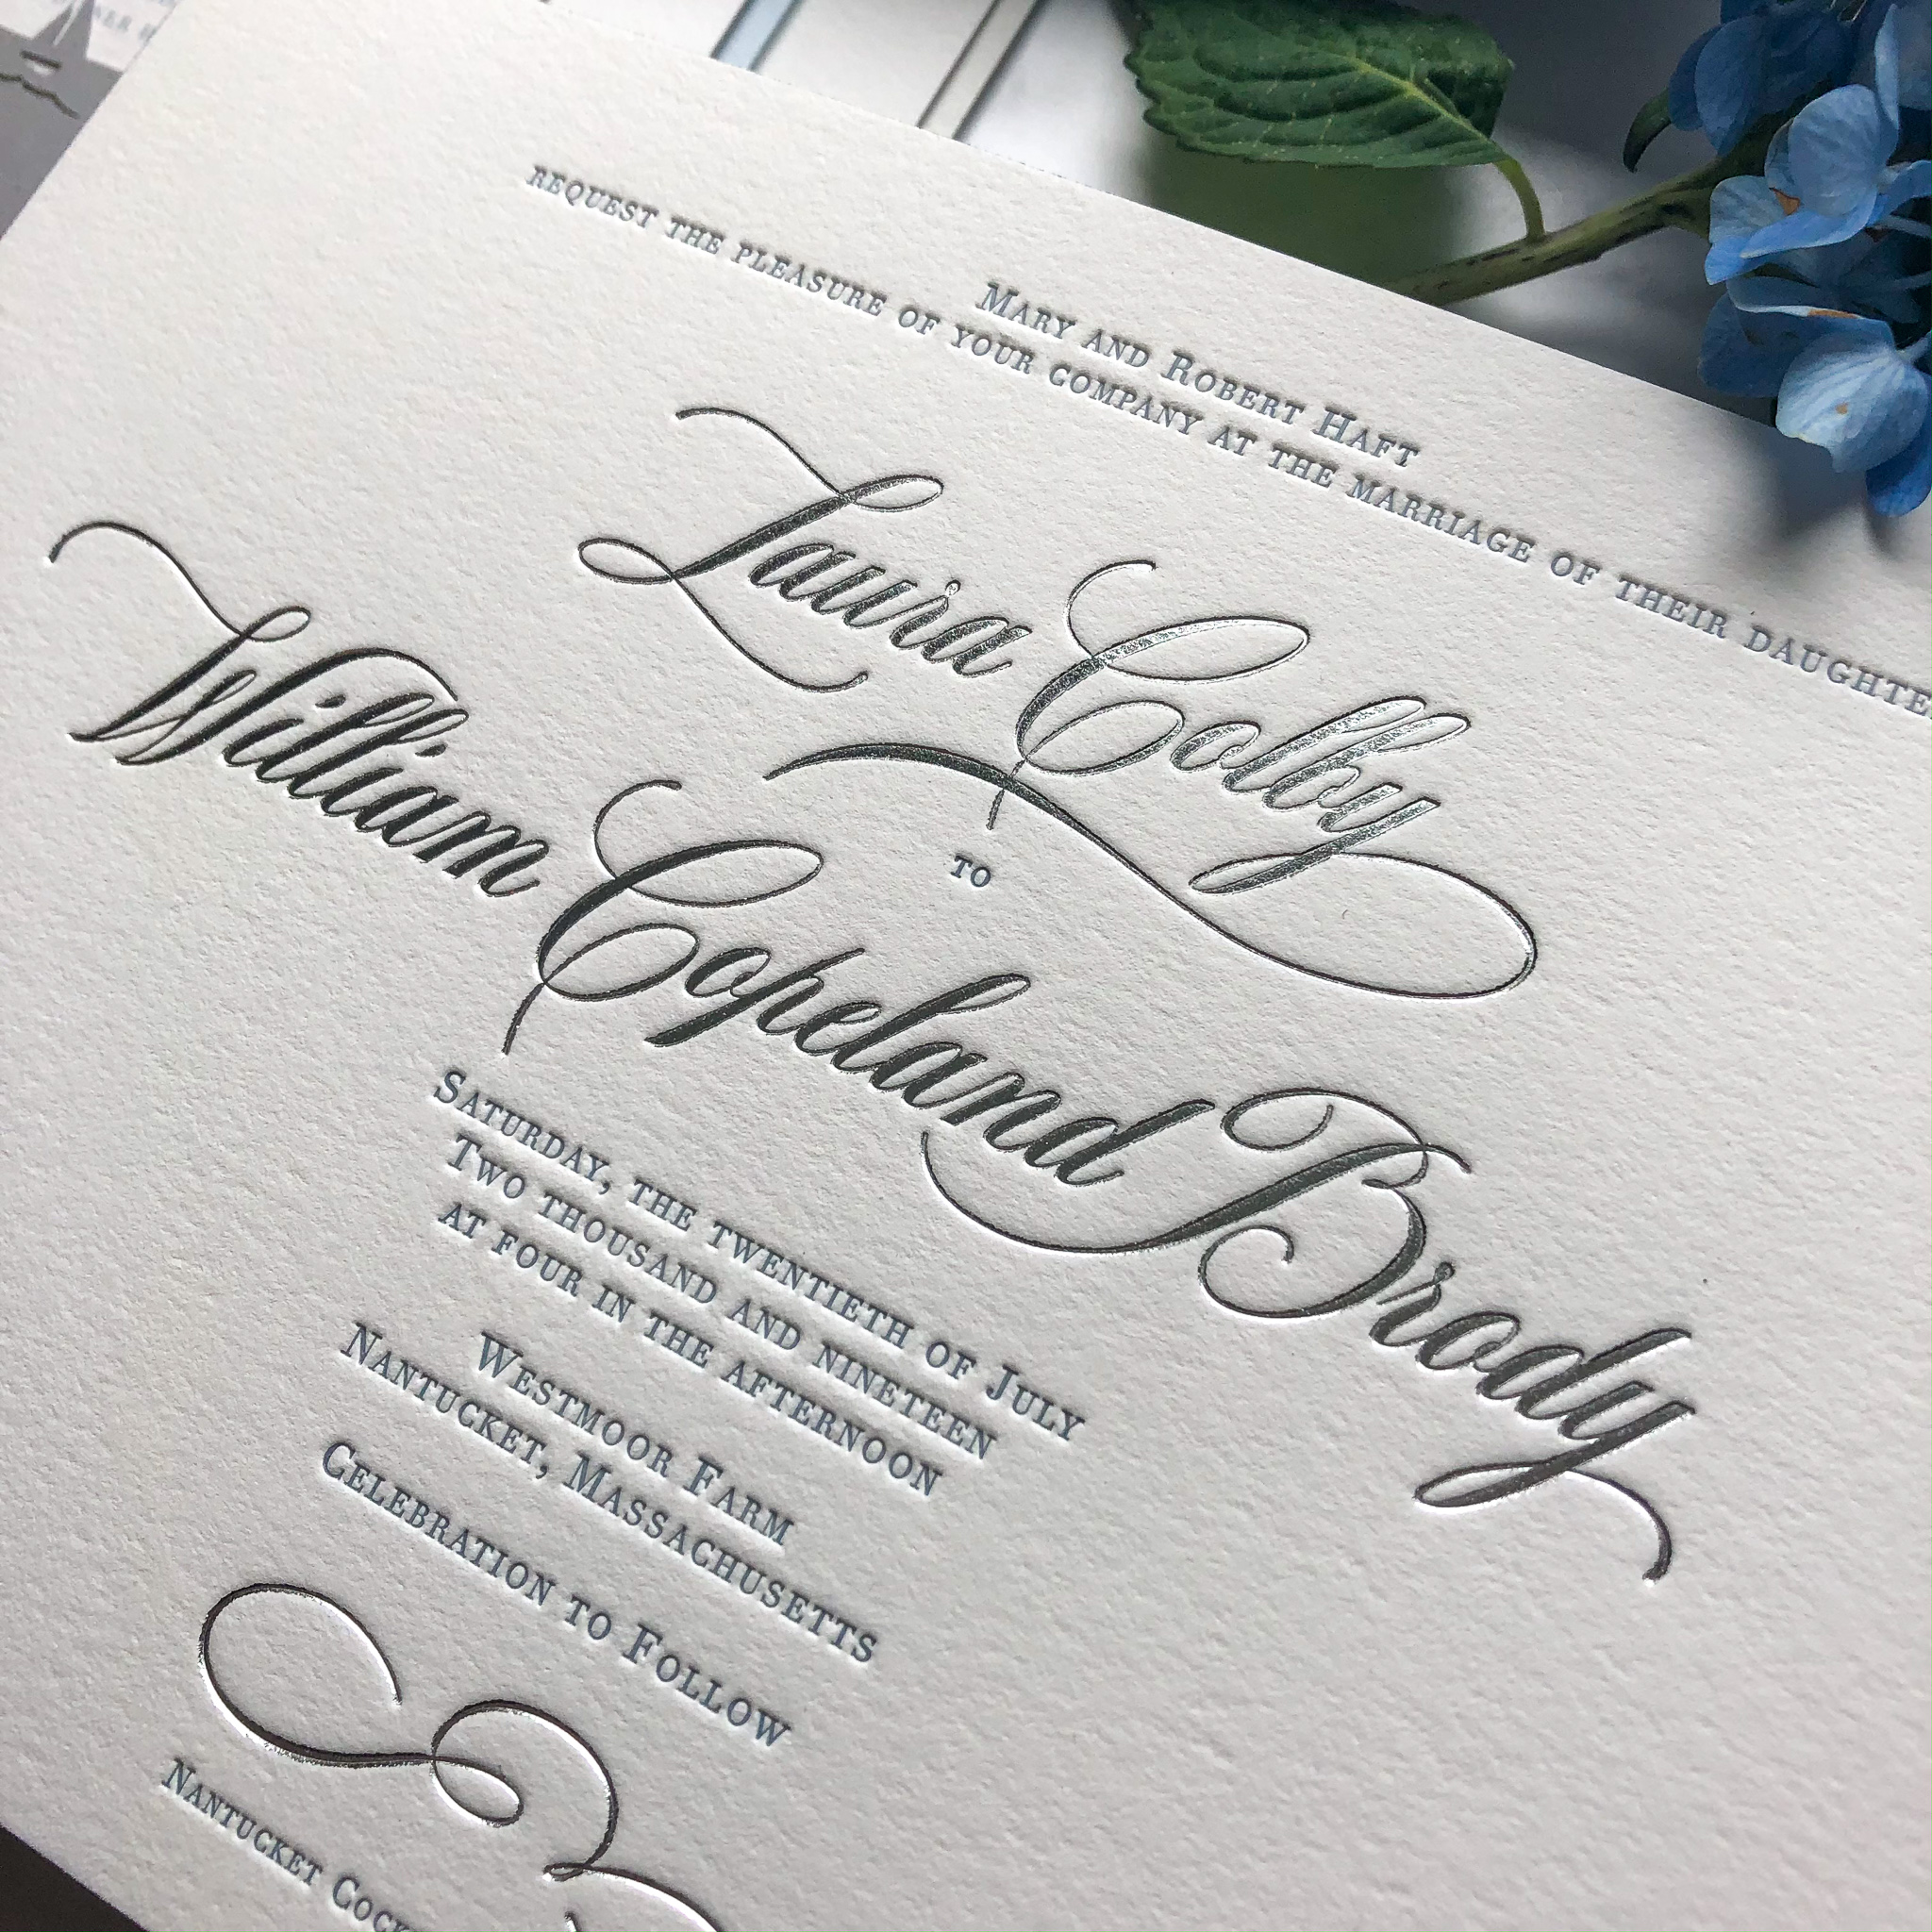 Silver Foil Stamping & Dusty Blue Letterpress. Digital Printing shown on Rehearsal Card and Outer Envelope.